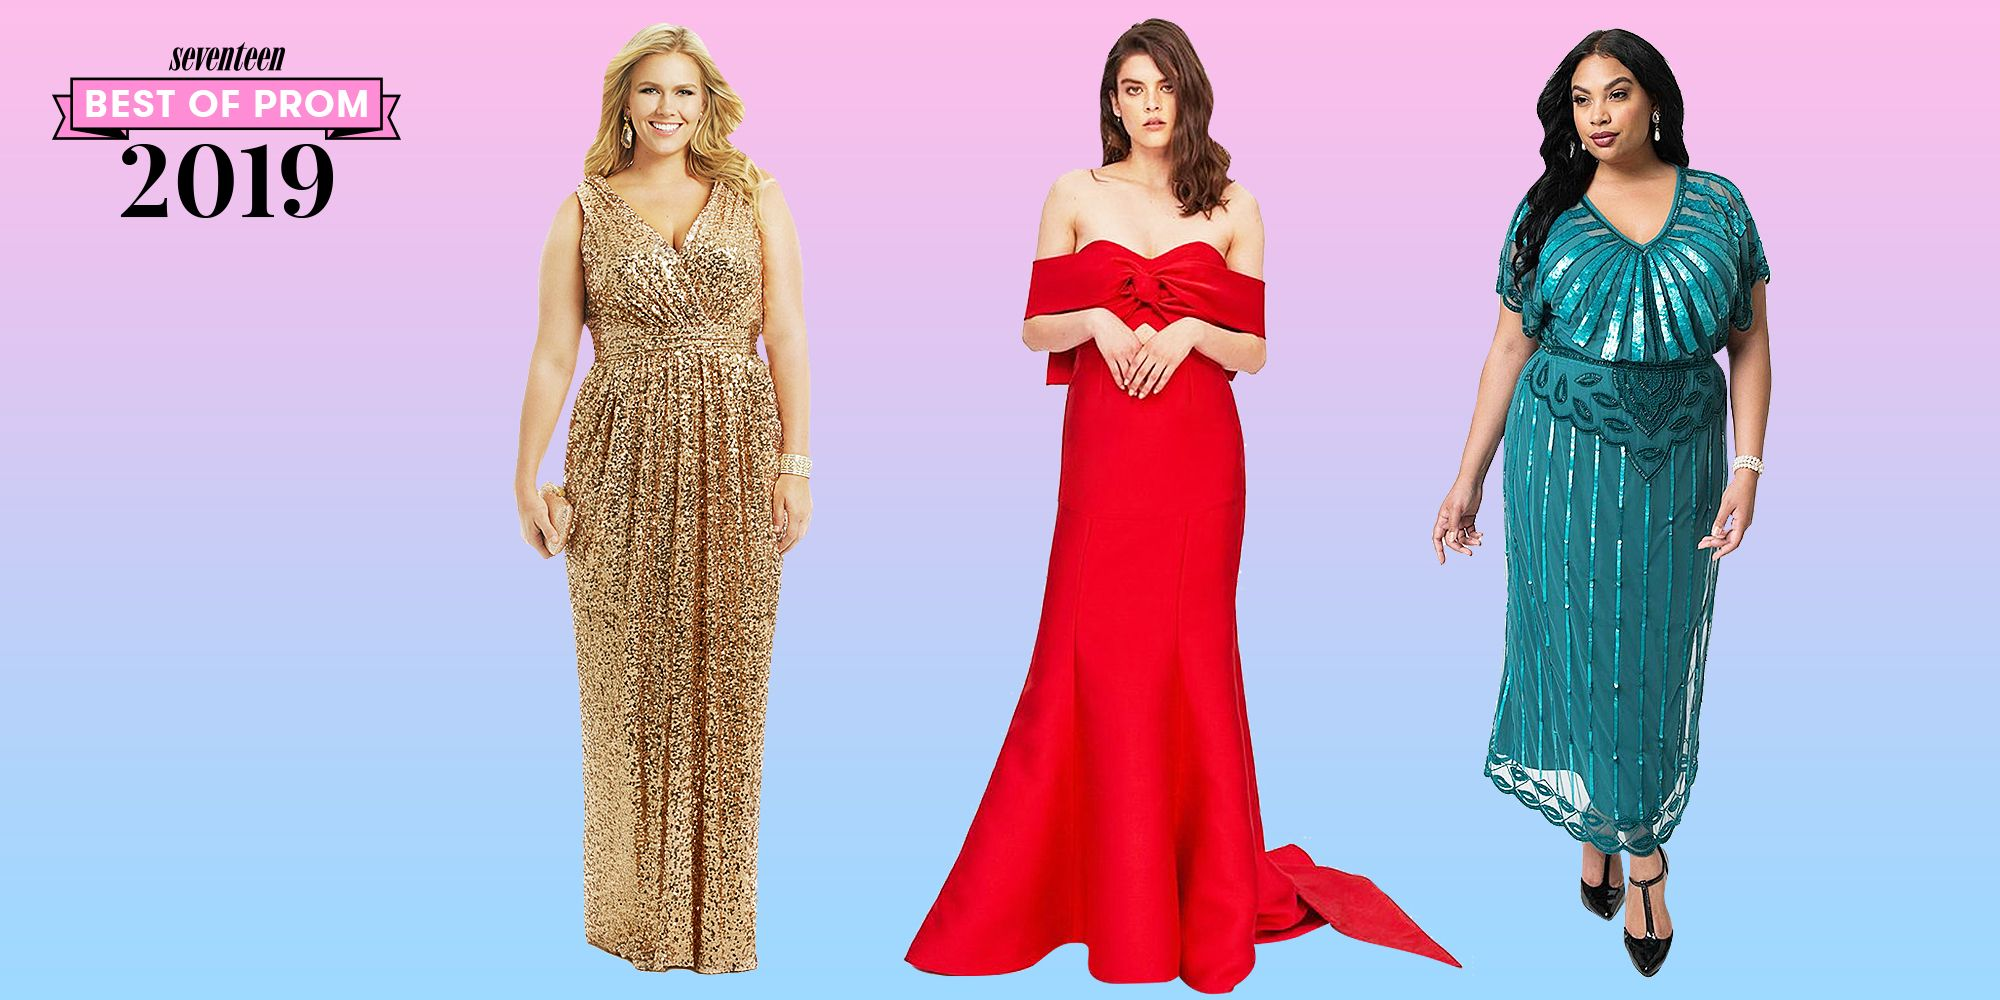 13 Stunning Vintage Prom Dresses Of 2019 For A Retro Look What To